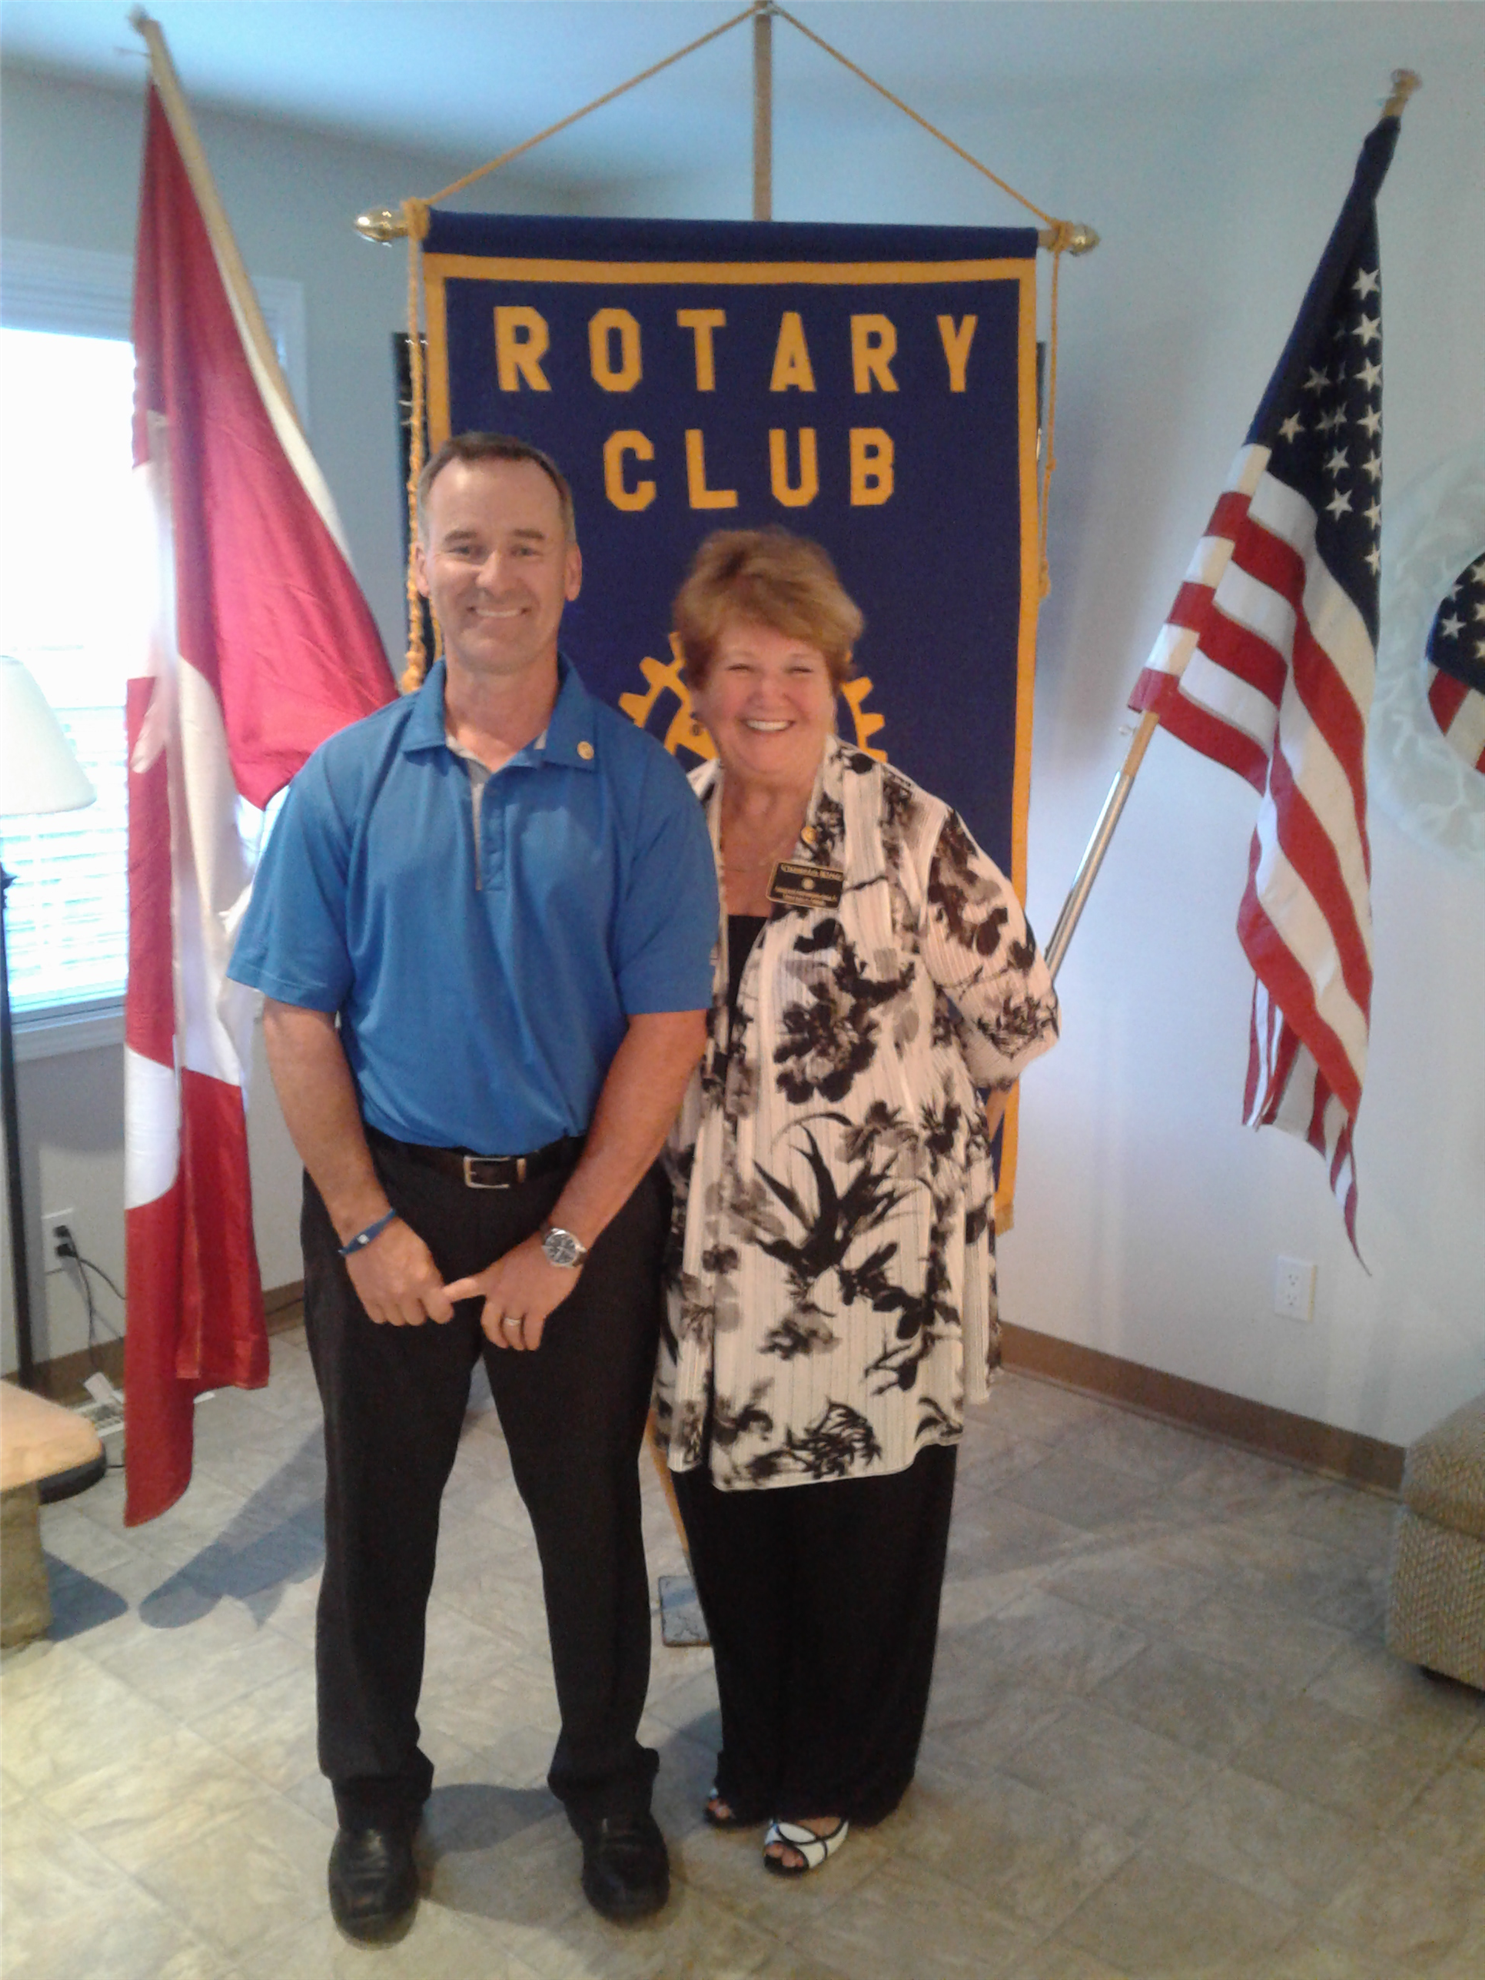 871ea4dce Jeff Duguid our new President of Rotary of Osoyoos with Cheryle King  Assistant Govenor of Area 7